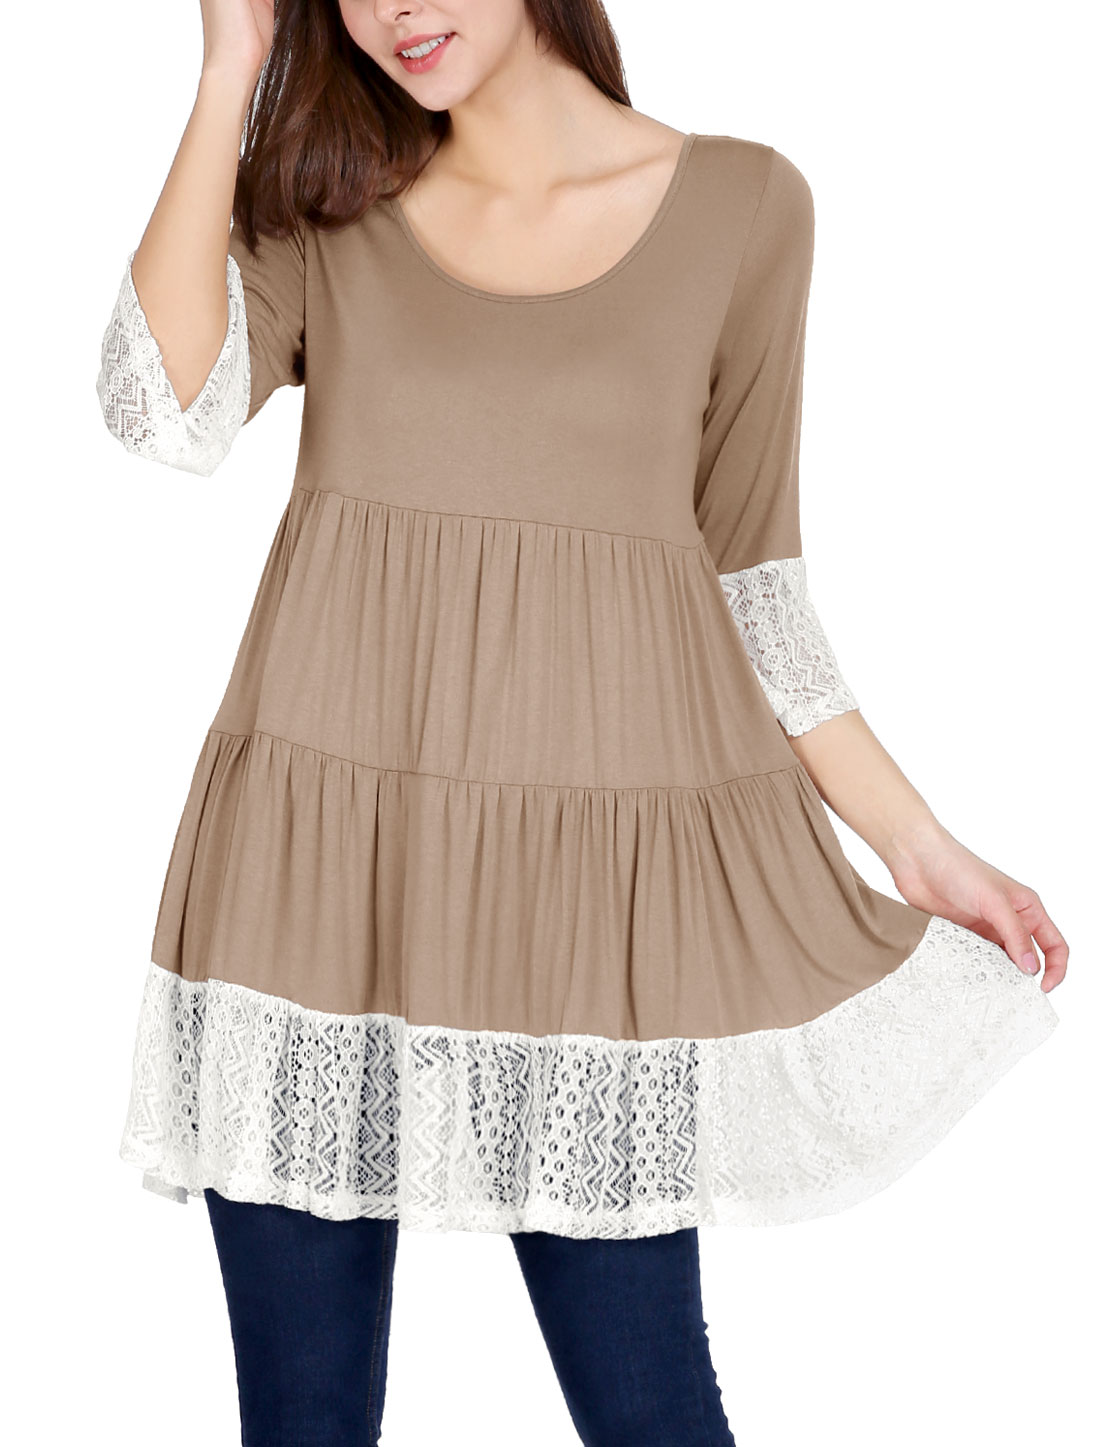 Women Trumpet Sleeves Lace Panel Ruffle Hem Loose Tiered Tunic Top Brown XS